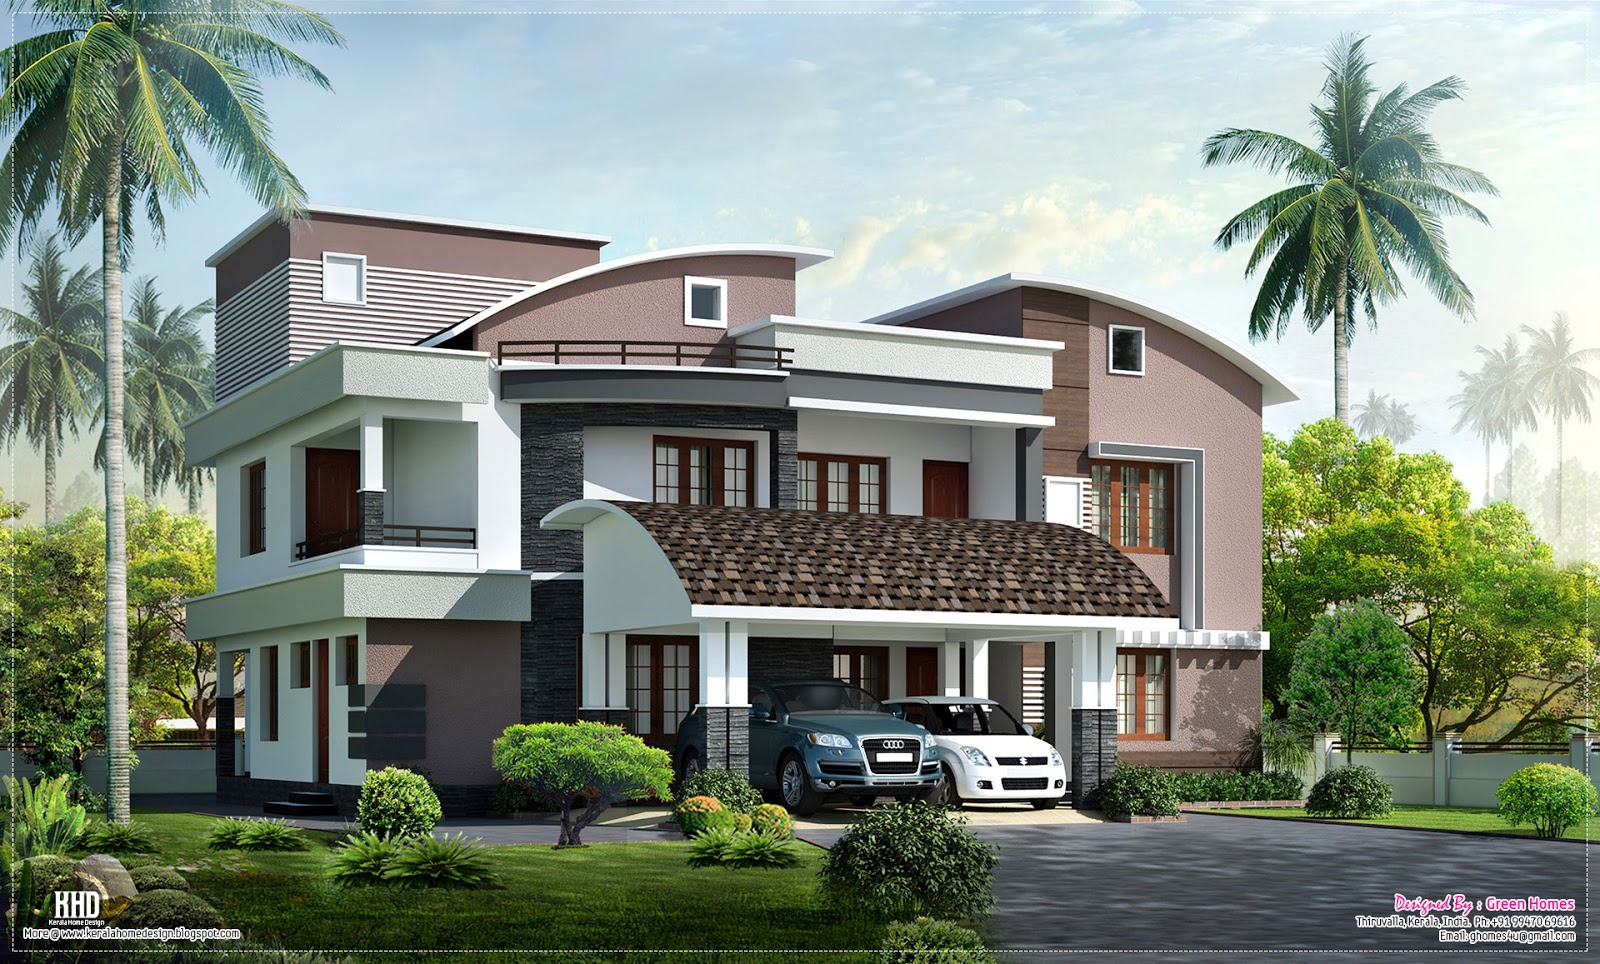 Modern style luxury villa exterior design kerala home for Villa style homes